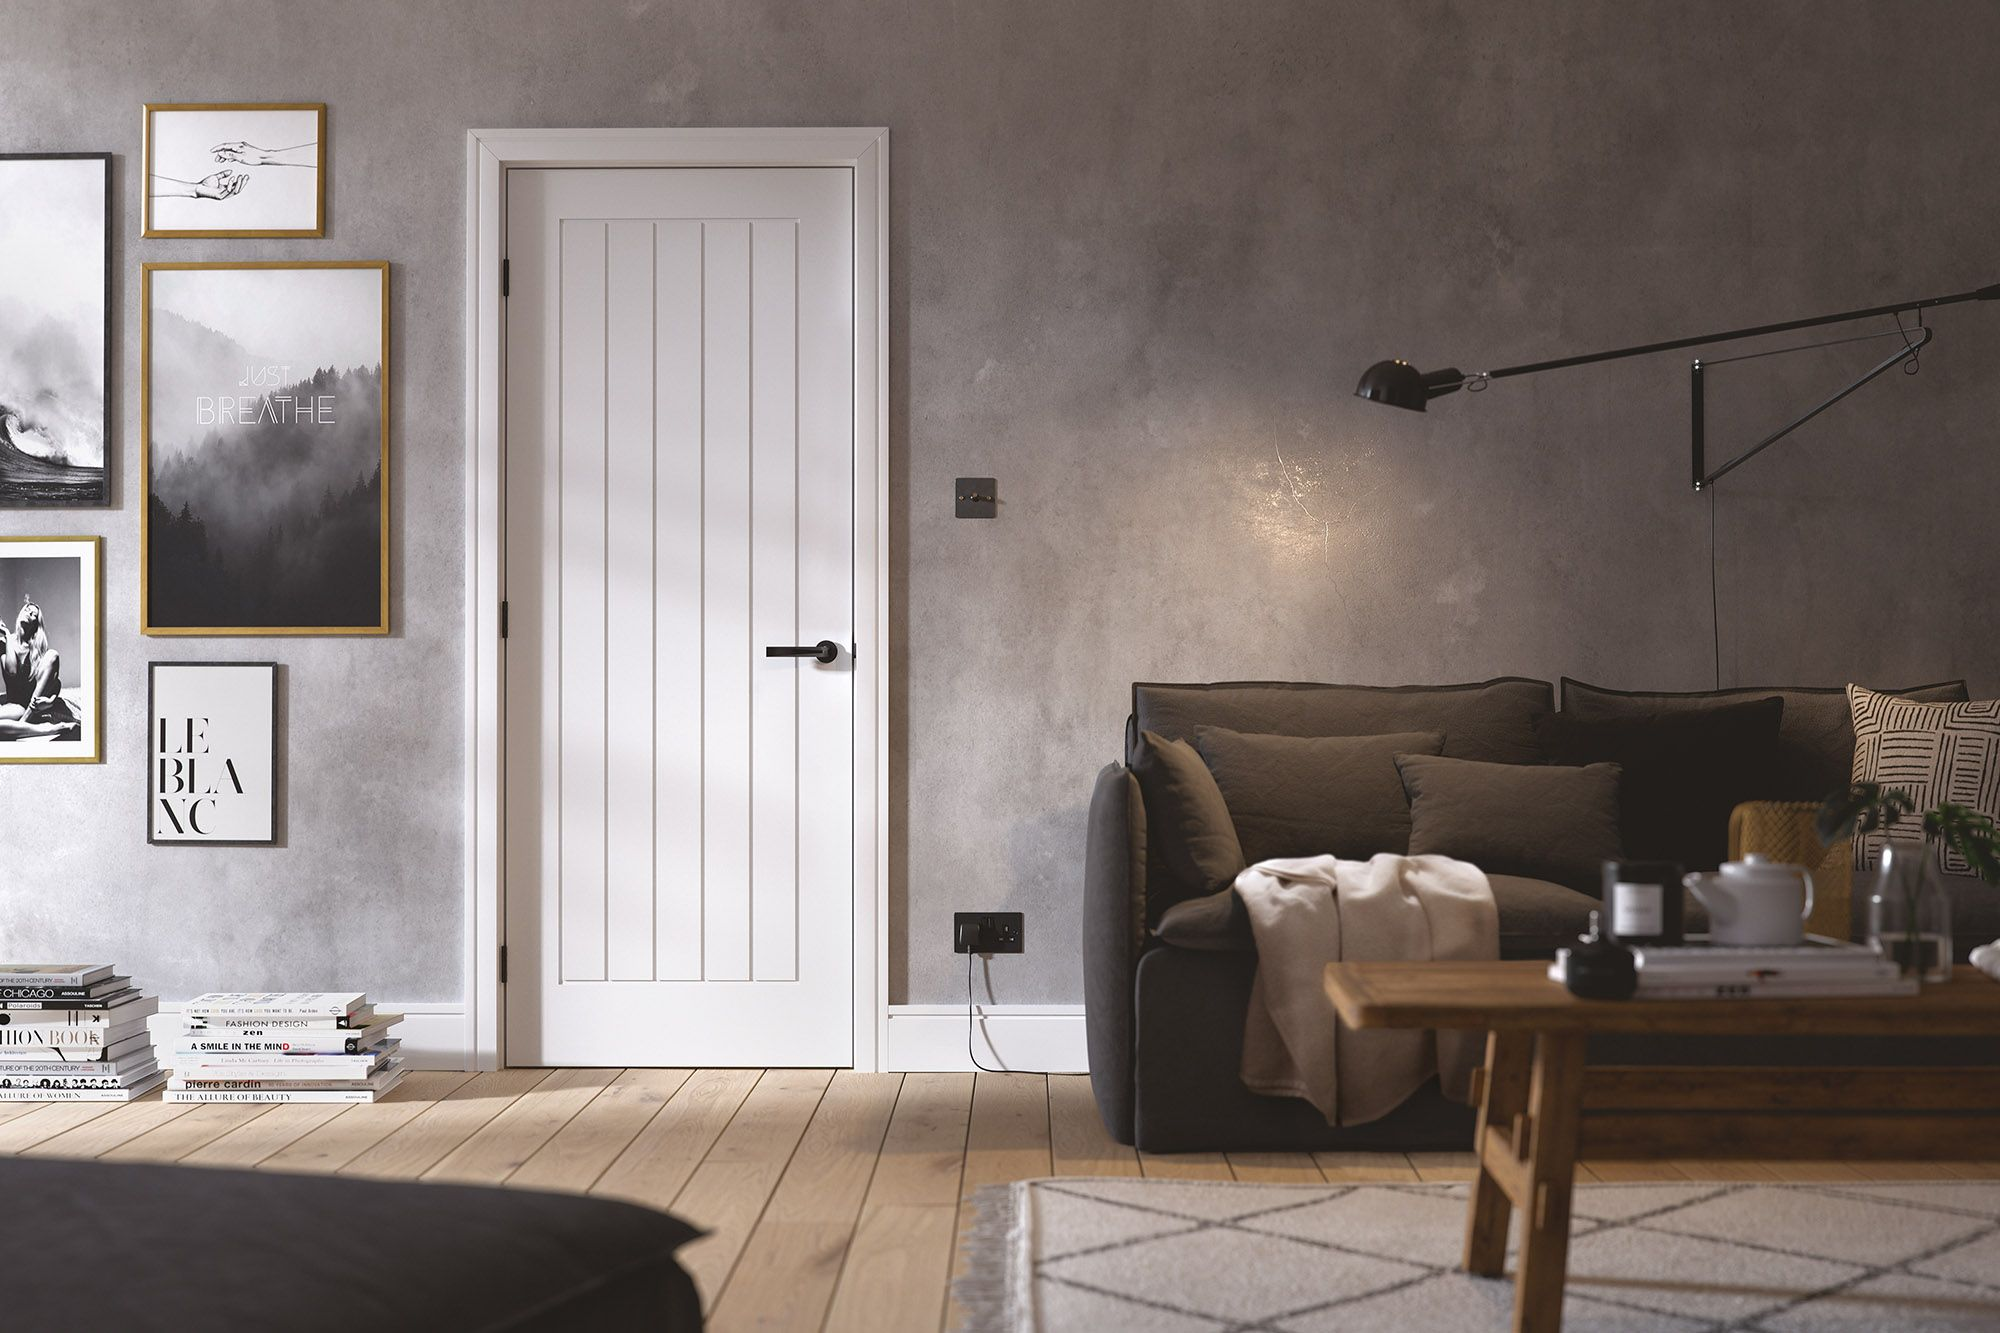 A popular white Mexicano internal door in a lifestyle room setting